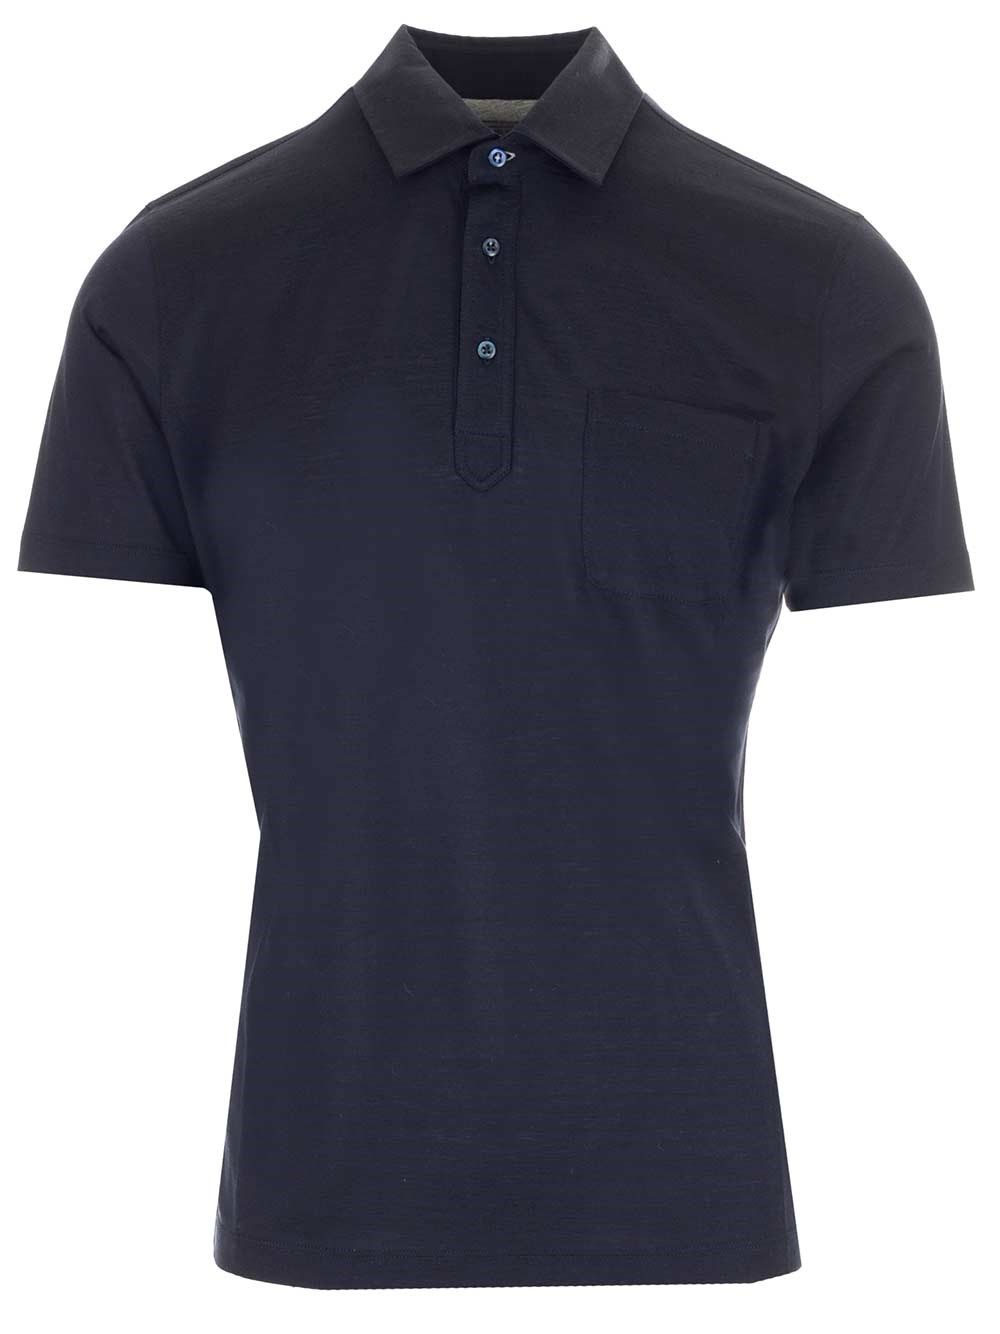 Brunello Cucinelli BRUNELLO CUCINELLI MEN'S MTS463901C575 BLUE OTHER MATERIALS POLO SHIRT